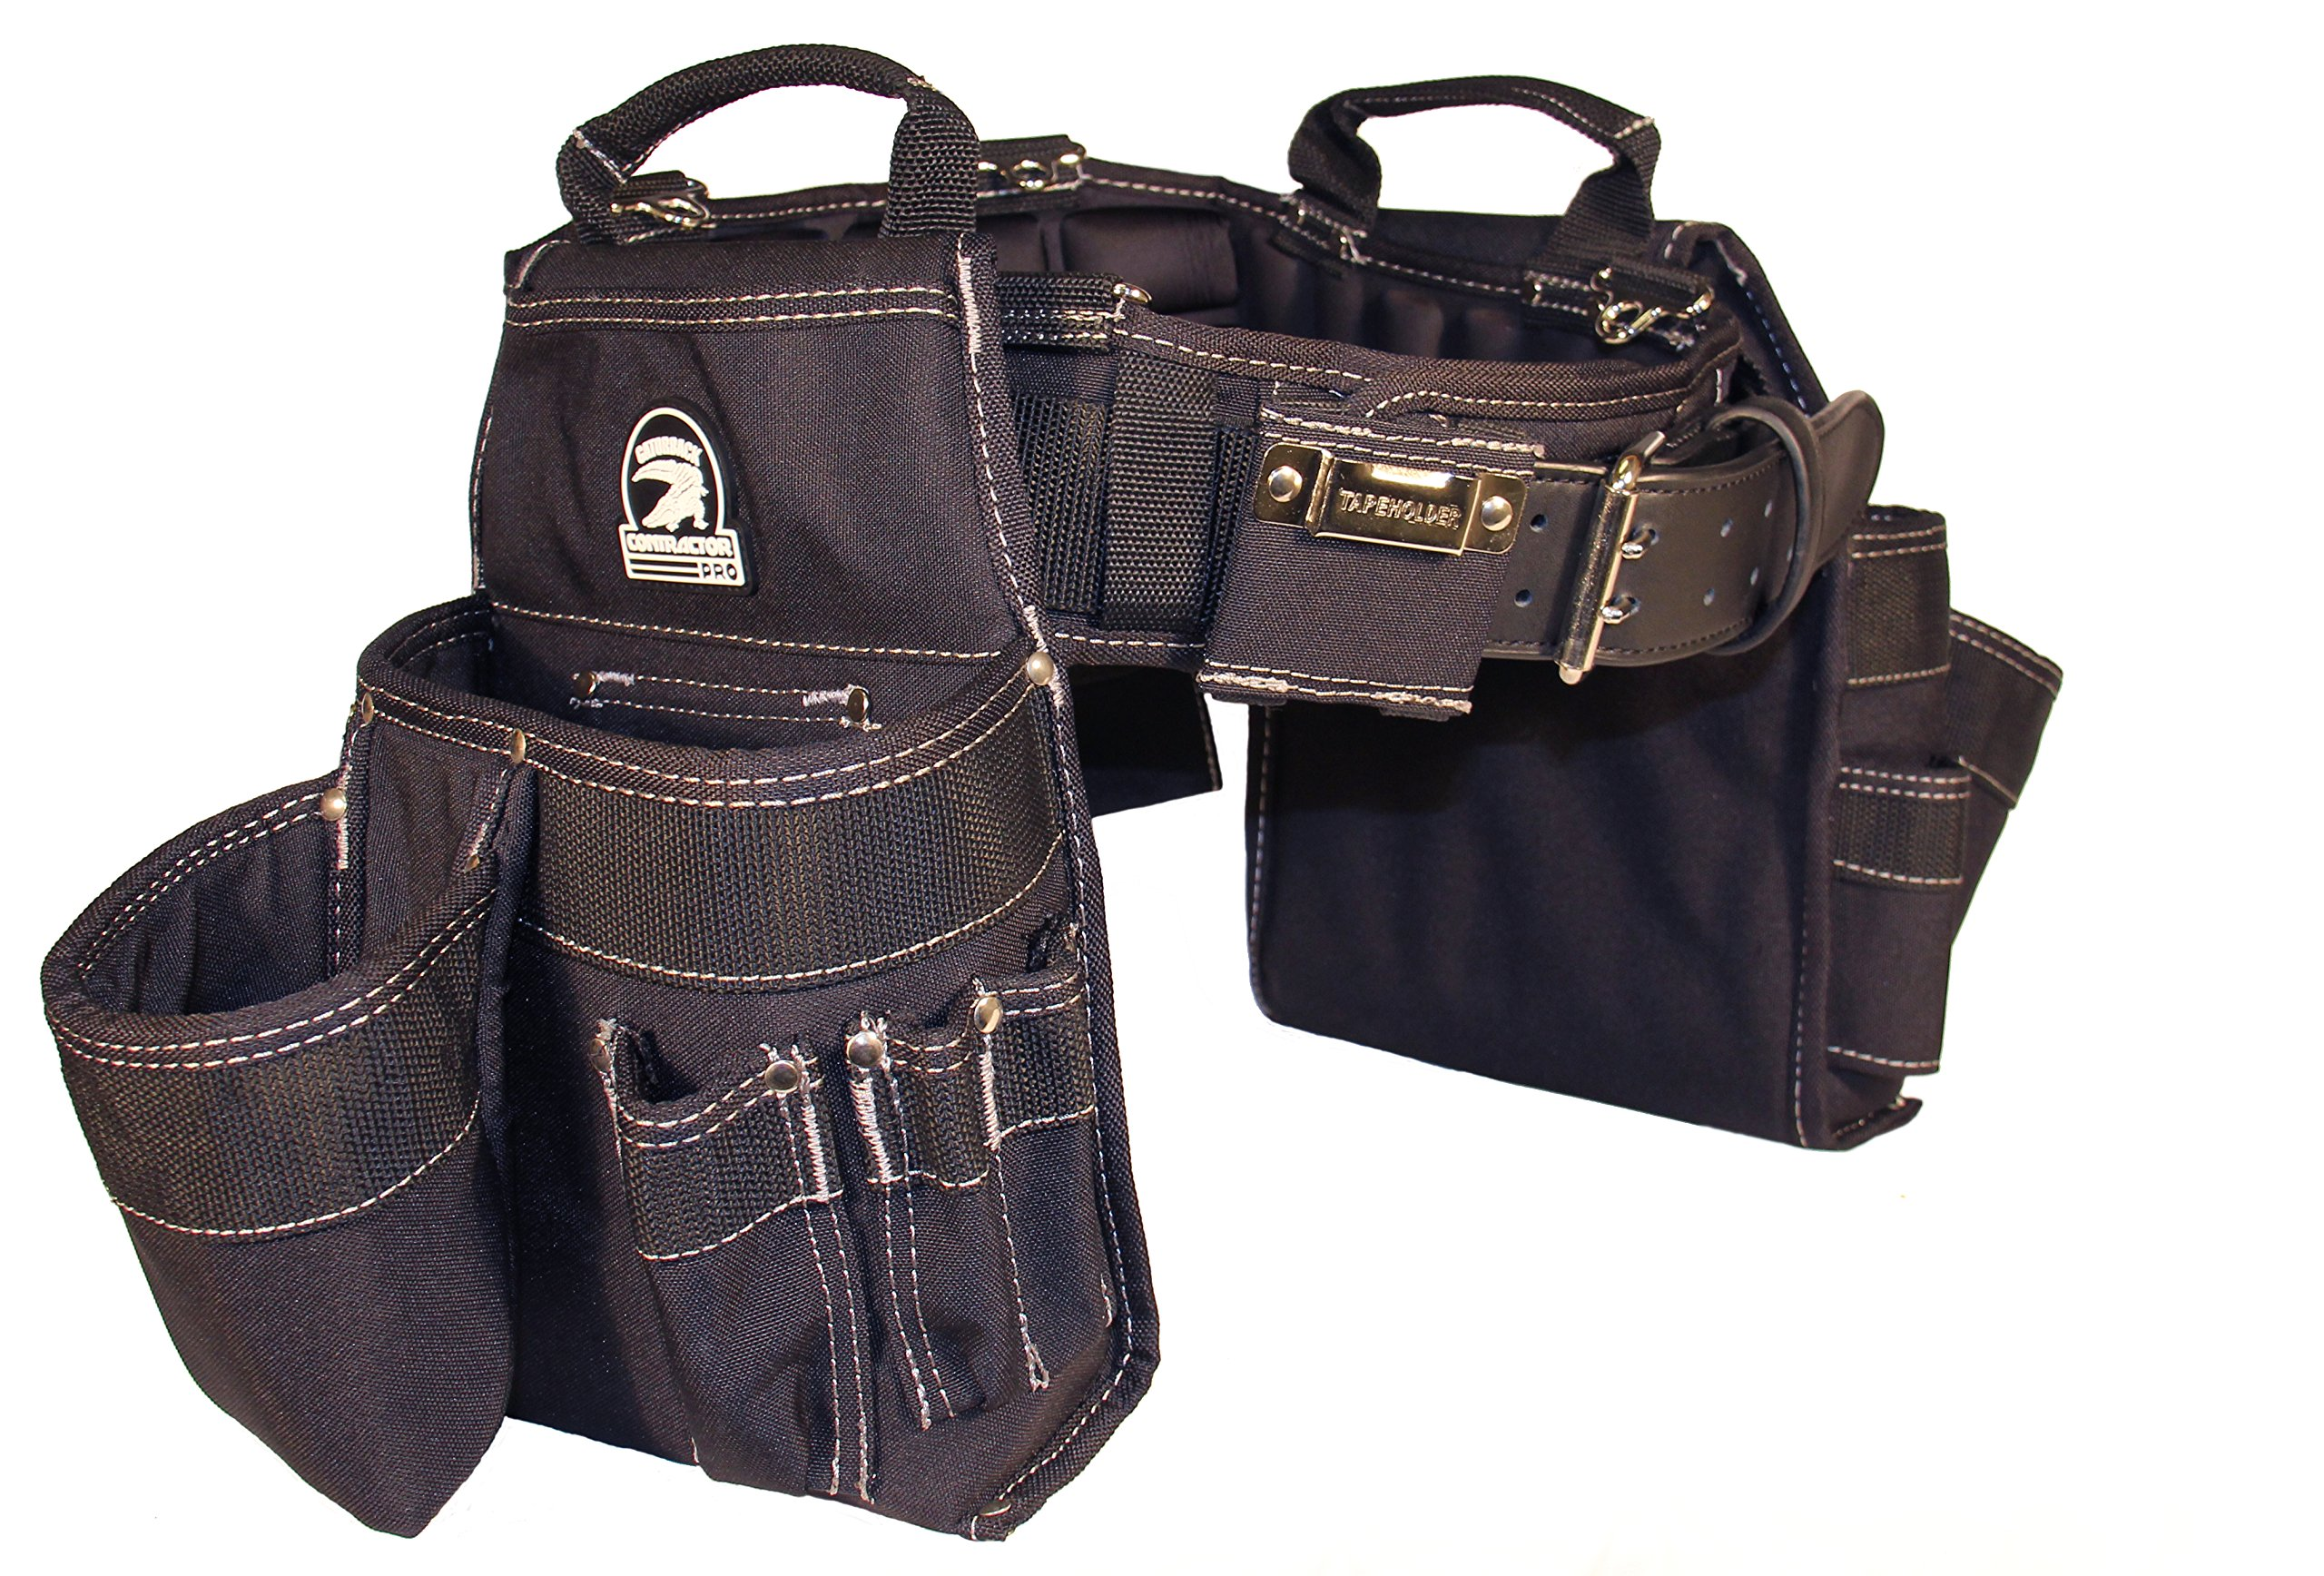 Gatorback Professional Carpenter's Tool Belt Combo w/ Air-Channel Pro Comfort Back Support Belt. (Medium 31-35 Inch Waist)